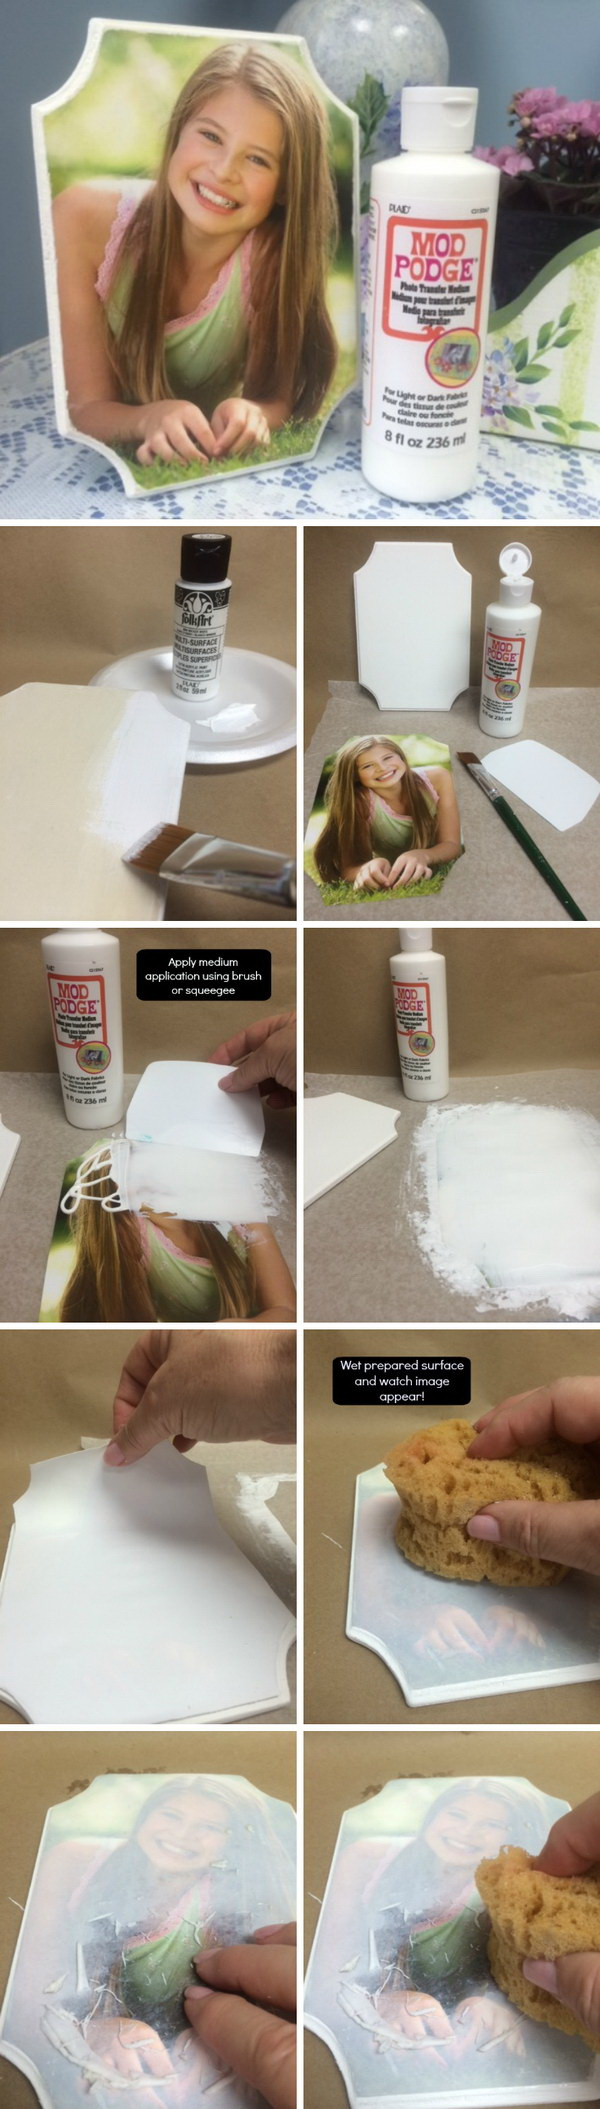 DIY Photo Project with Mod Podge Photo Transfer.